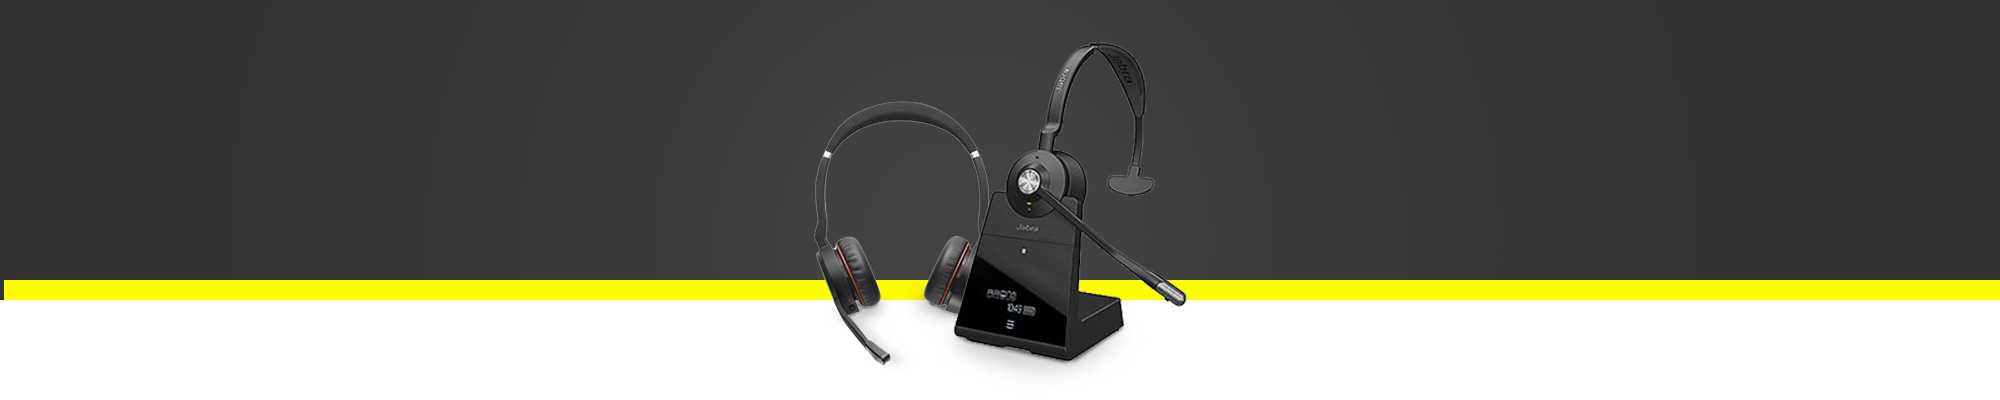 zones Jabra partner